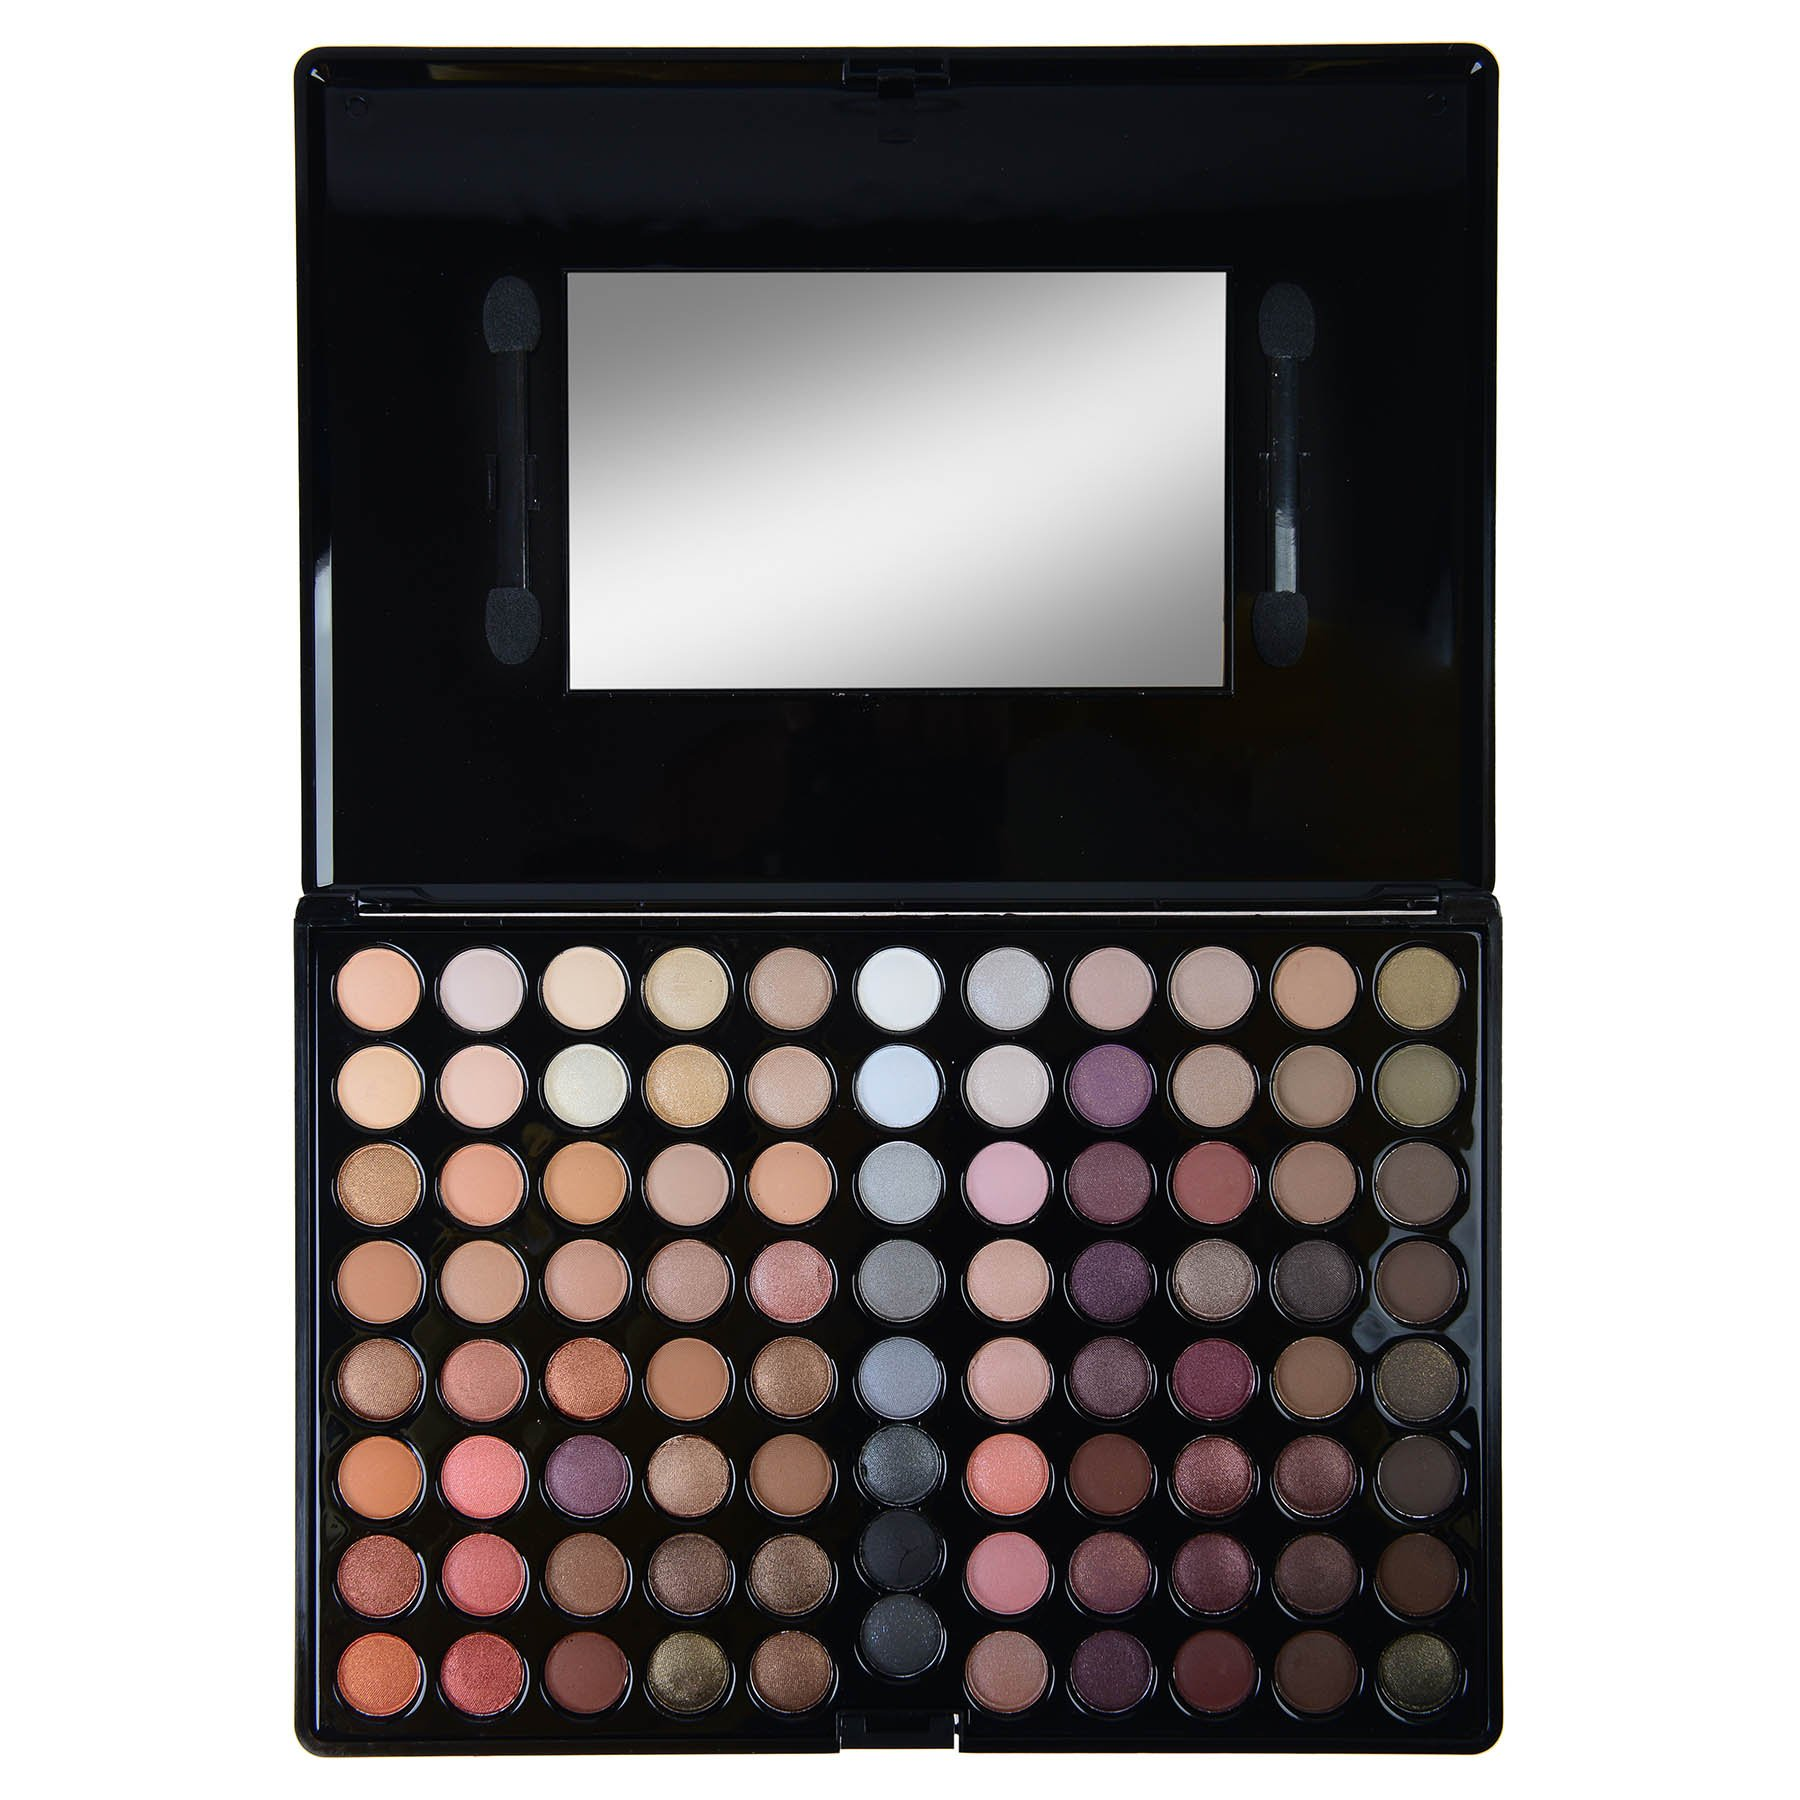 SHANY Natural Fusion Eyeshadow Palette (88 Color Eyeshadow Palette, Nude Palette), 2.15 Ounce by SHANY Cosmetics (Image #10)